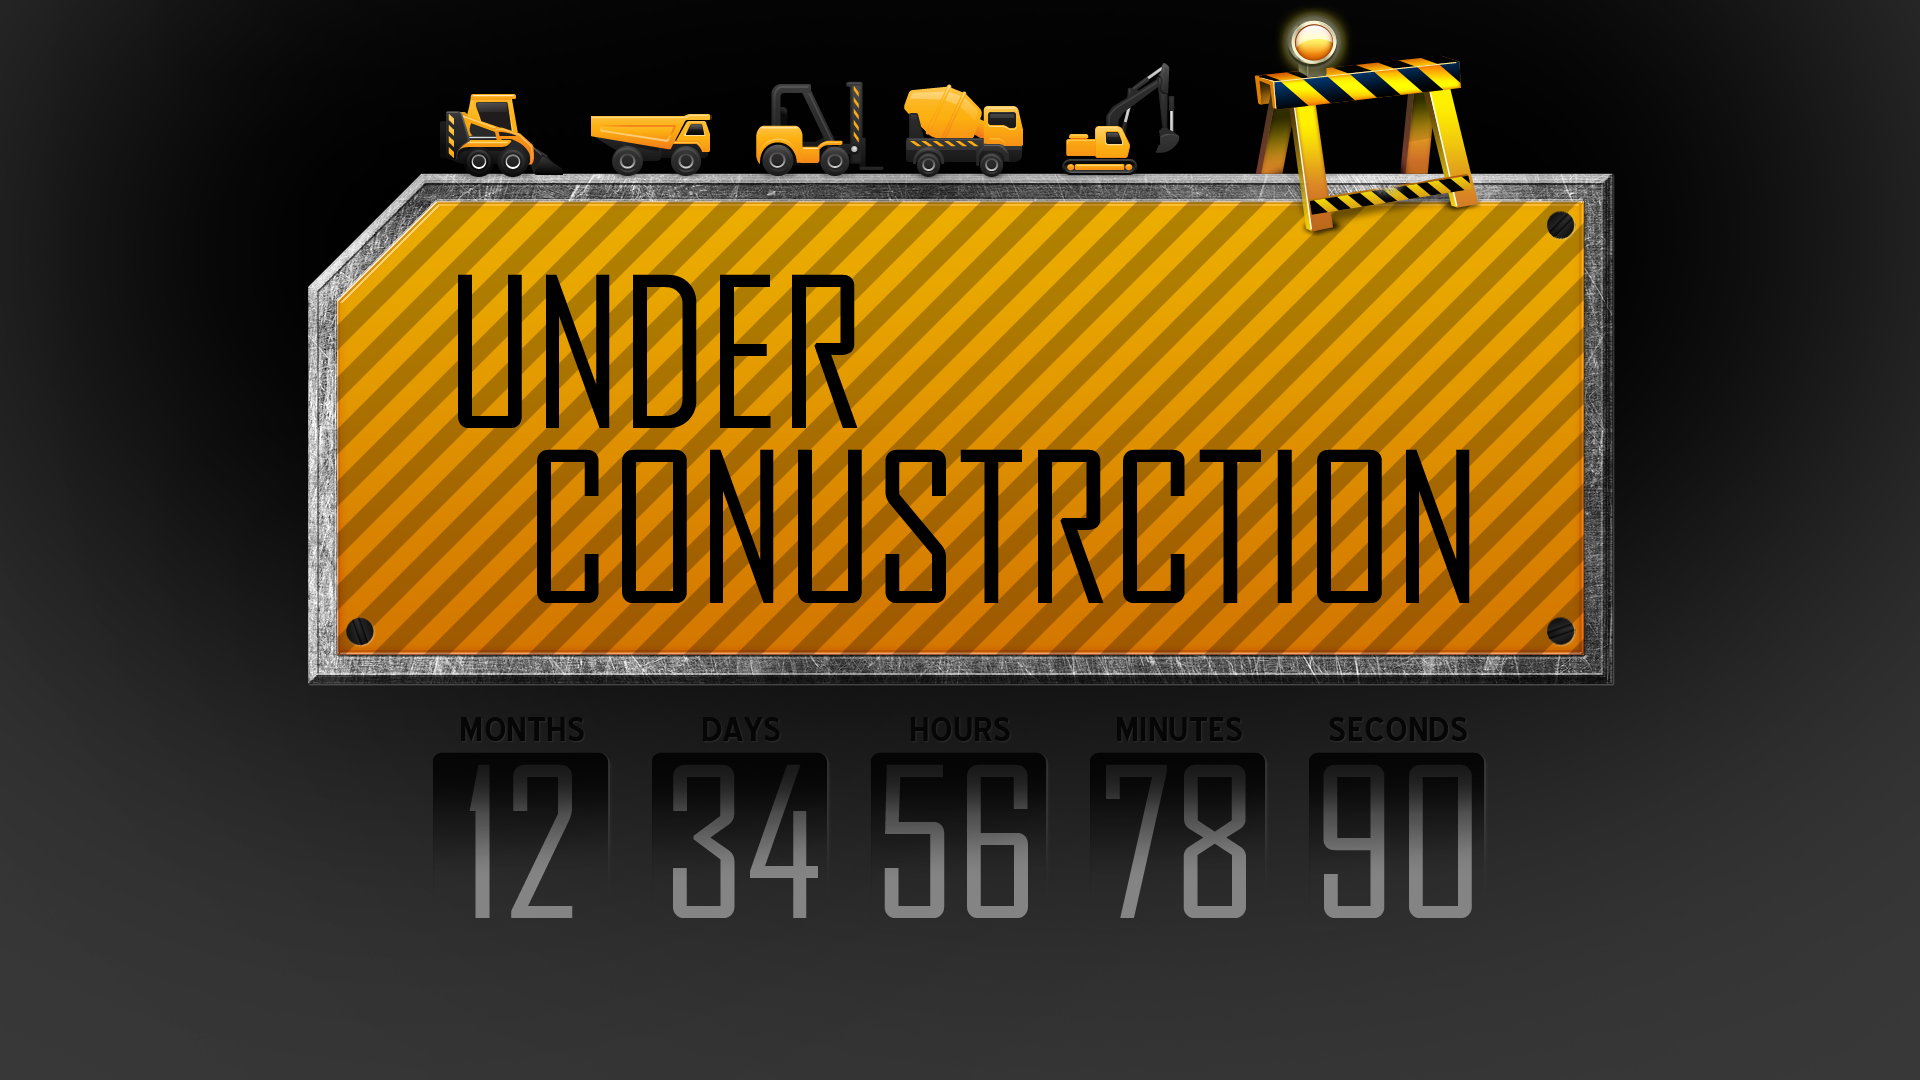 Under Construction Png Hd Free - 9, Transparent background PNG HD thumbnail